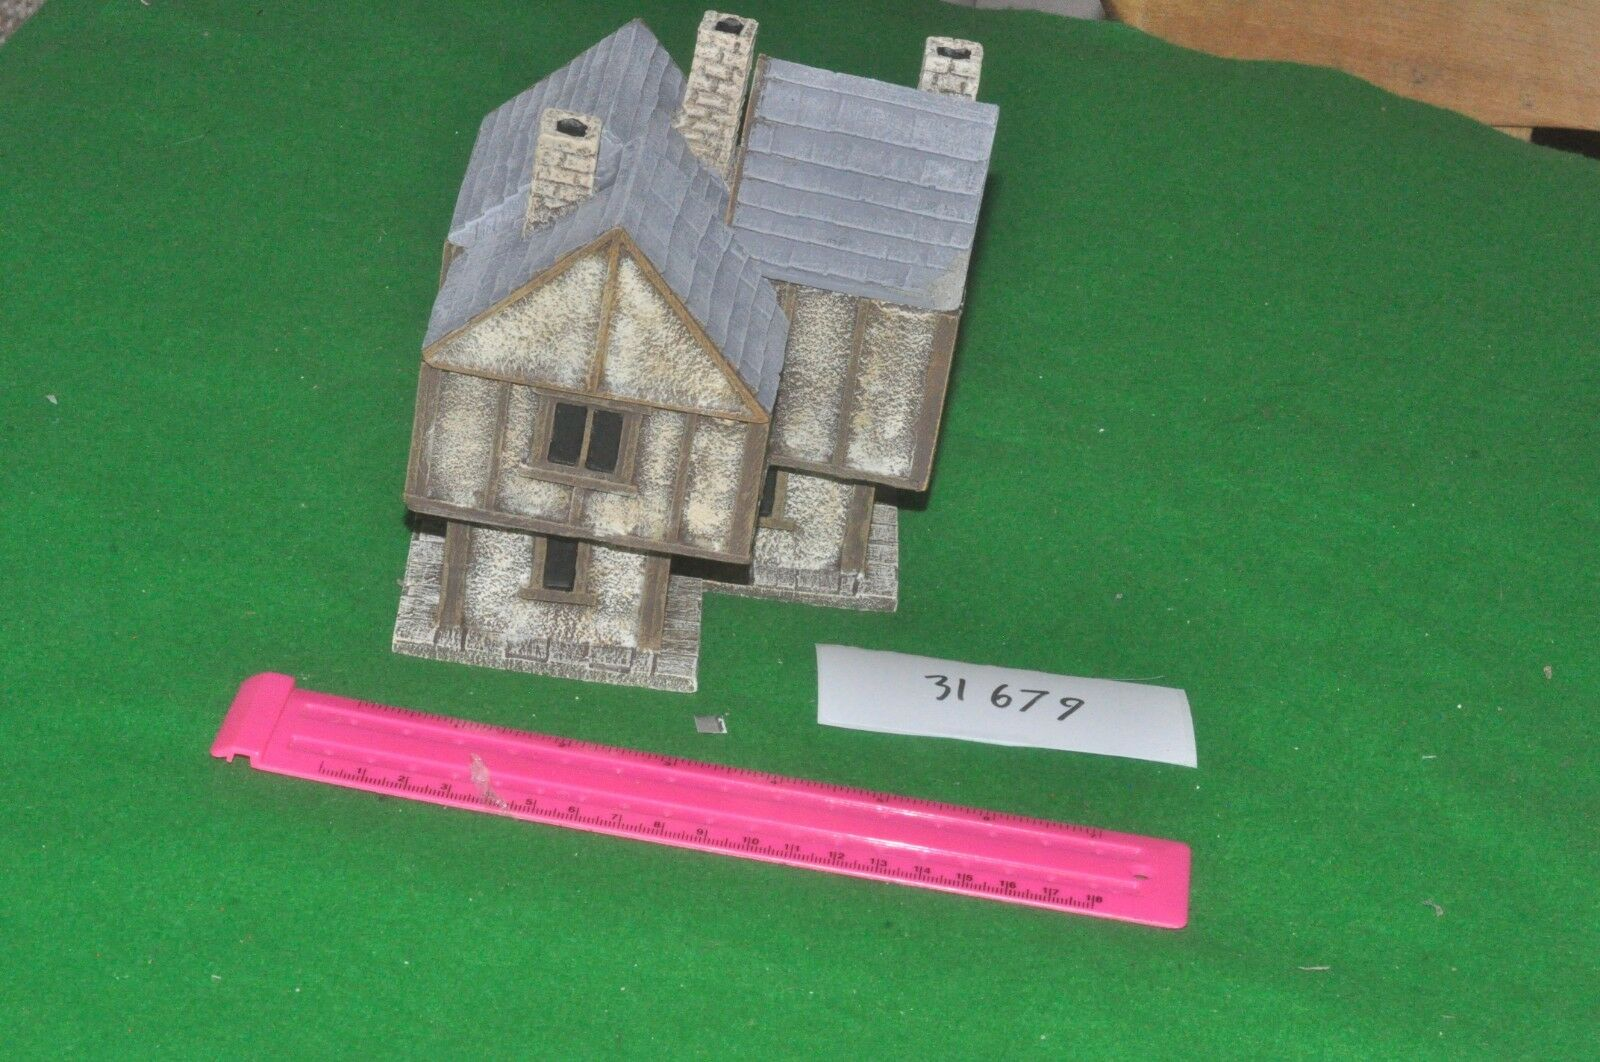 25mm scale house terrain scenery (31679)